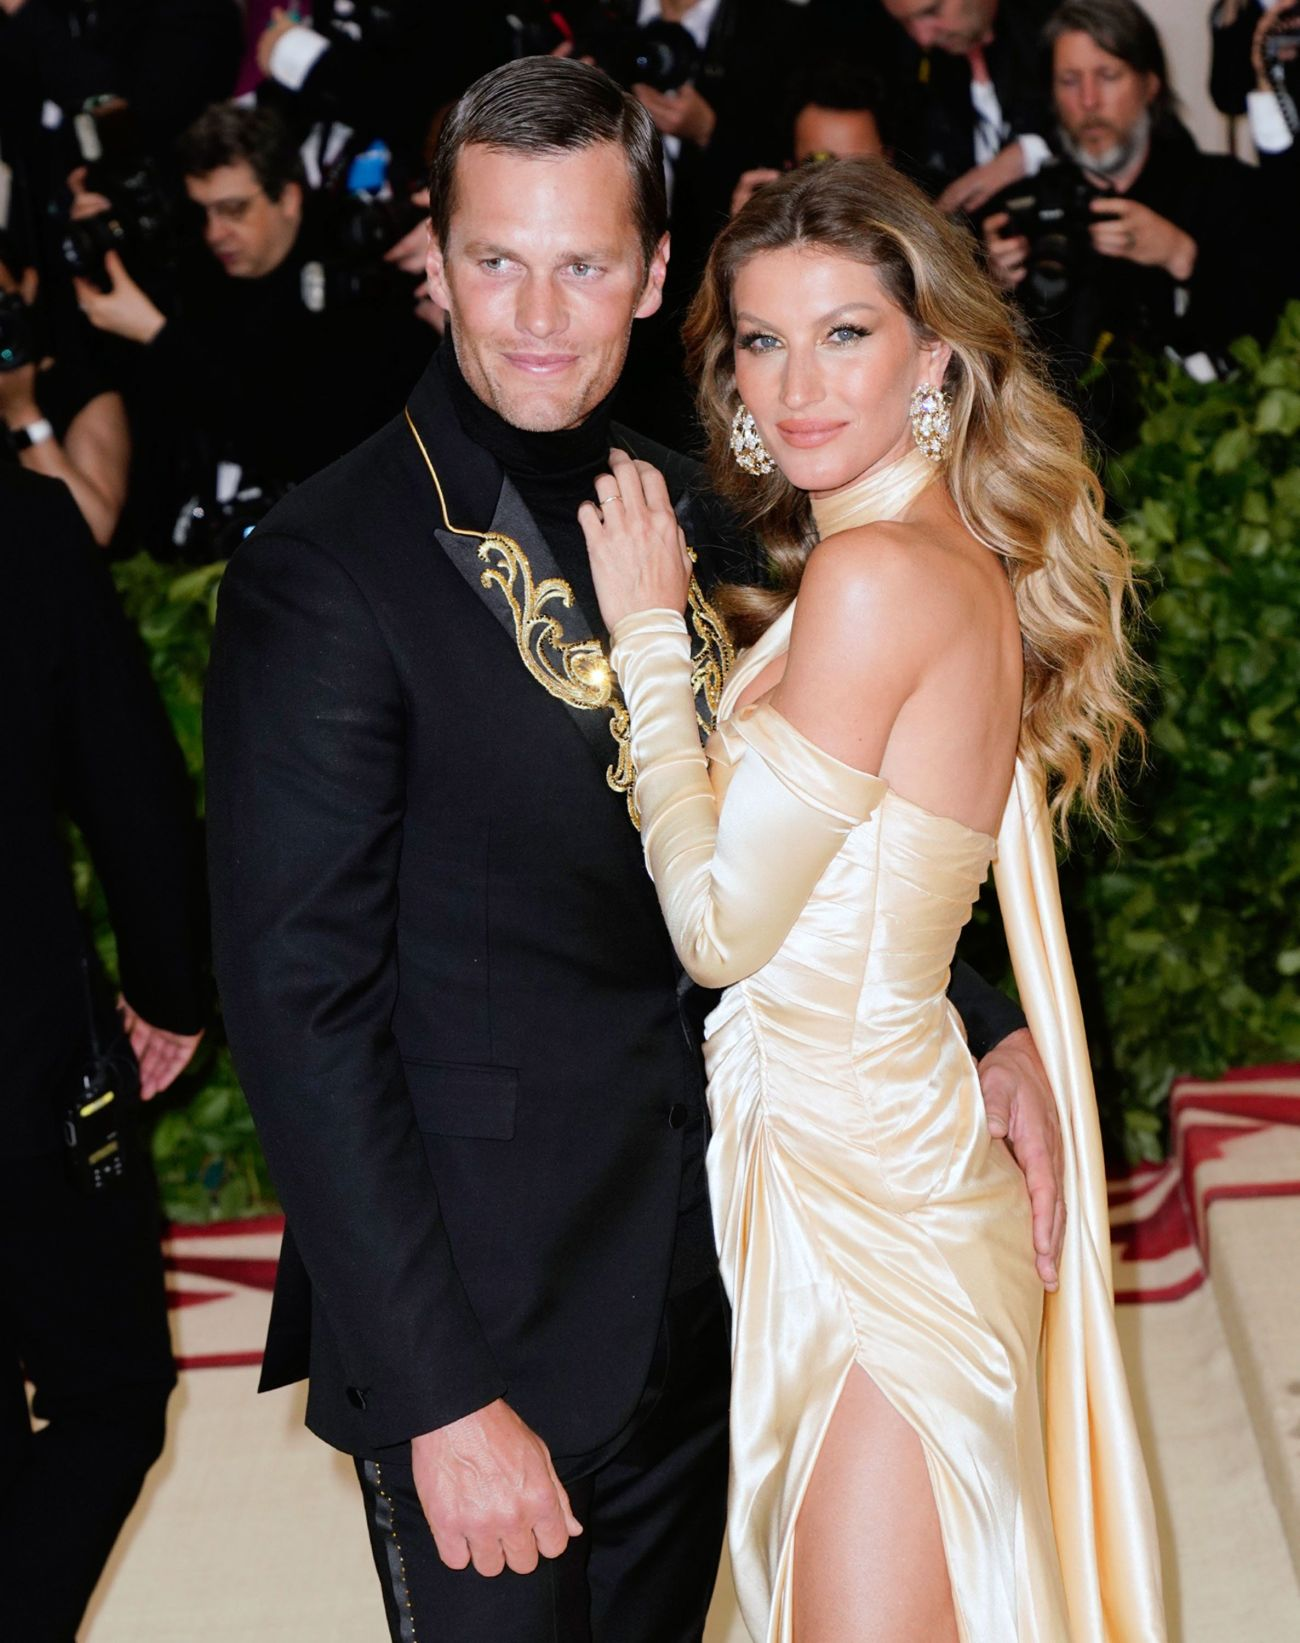 Bündchen and Tom Brady attend the Heavenly Bodies: Fashion & The Catholic Imagination Costume Institute Gala at